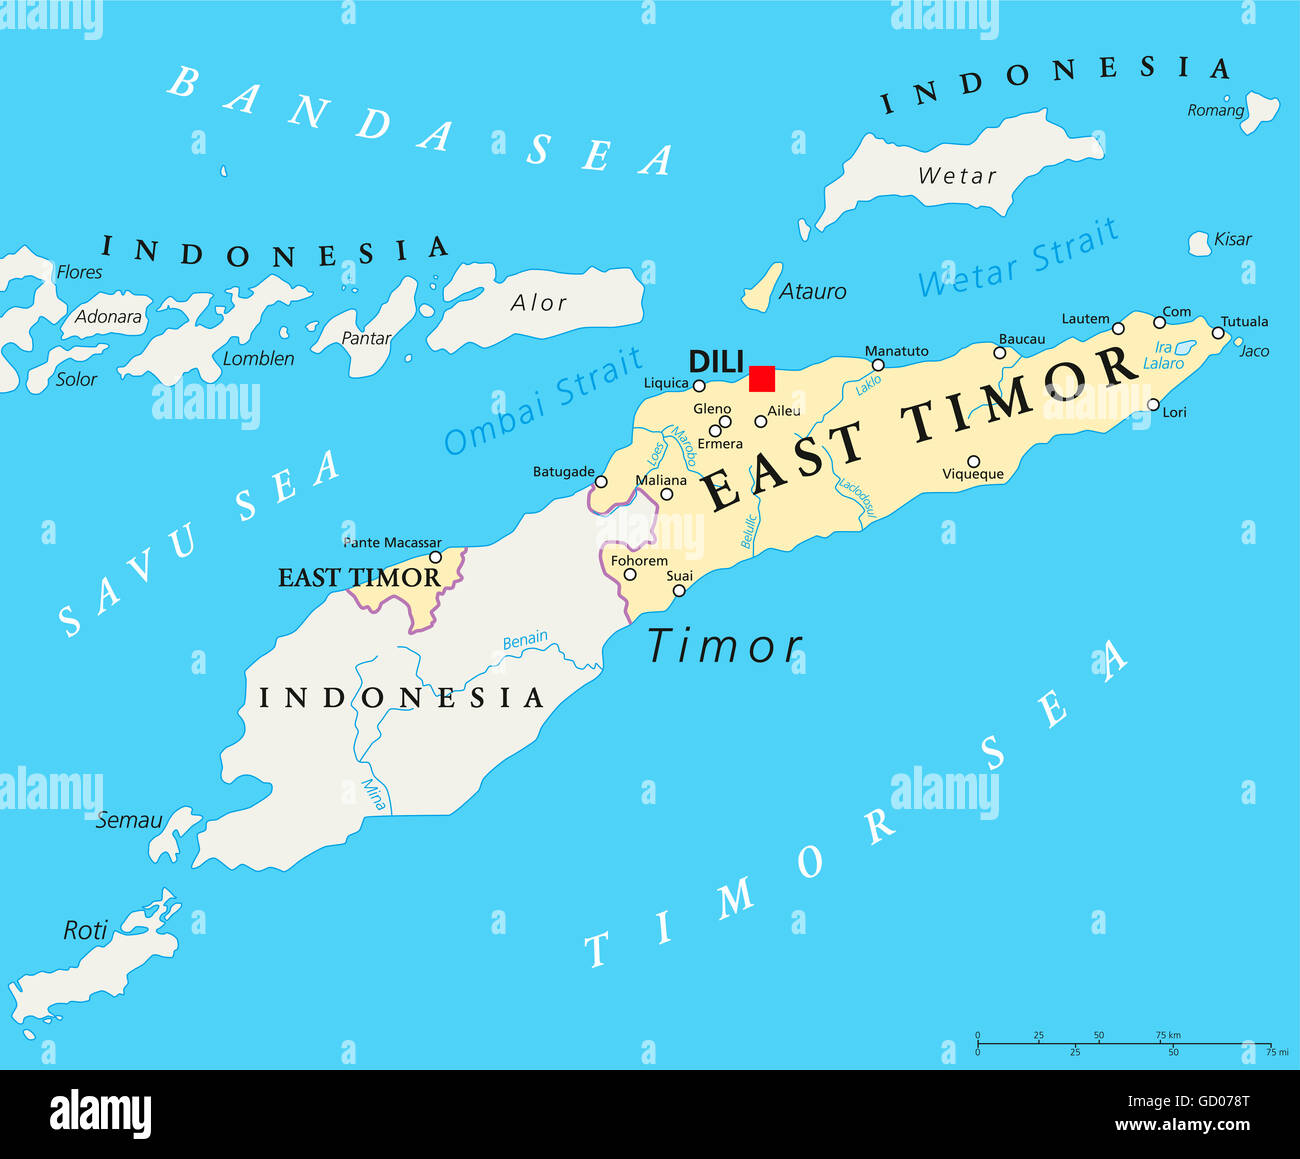 East Timor political map with capital Dili national borders Stock